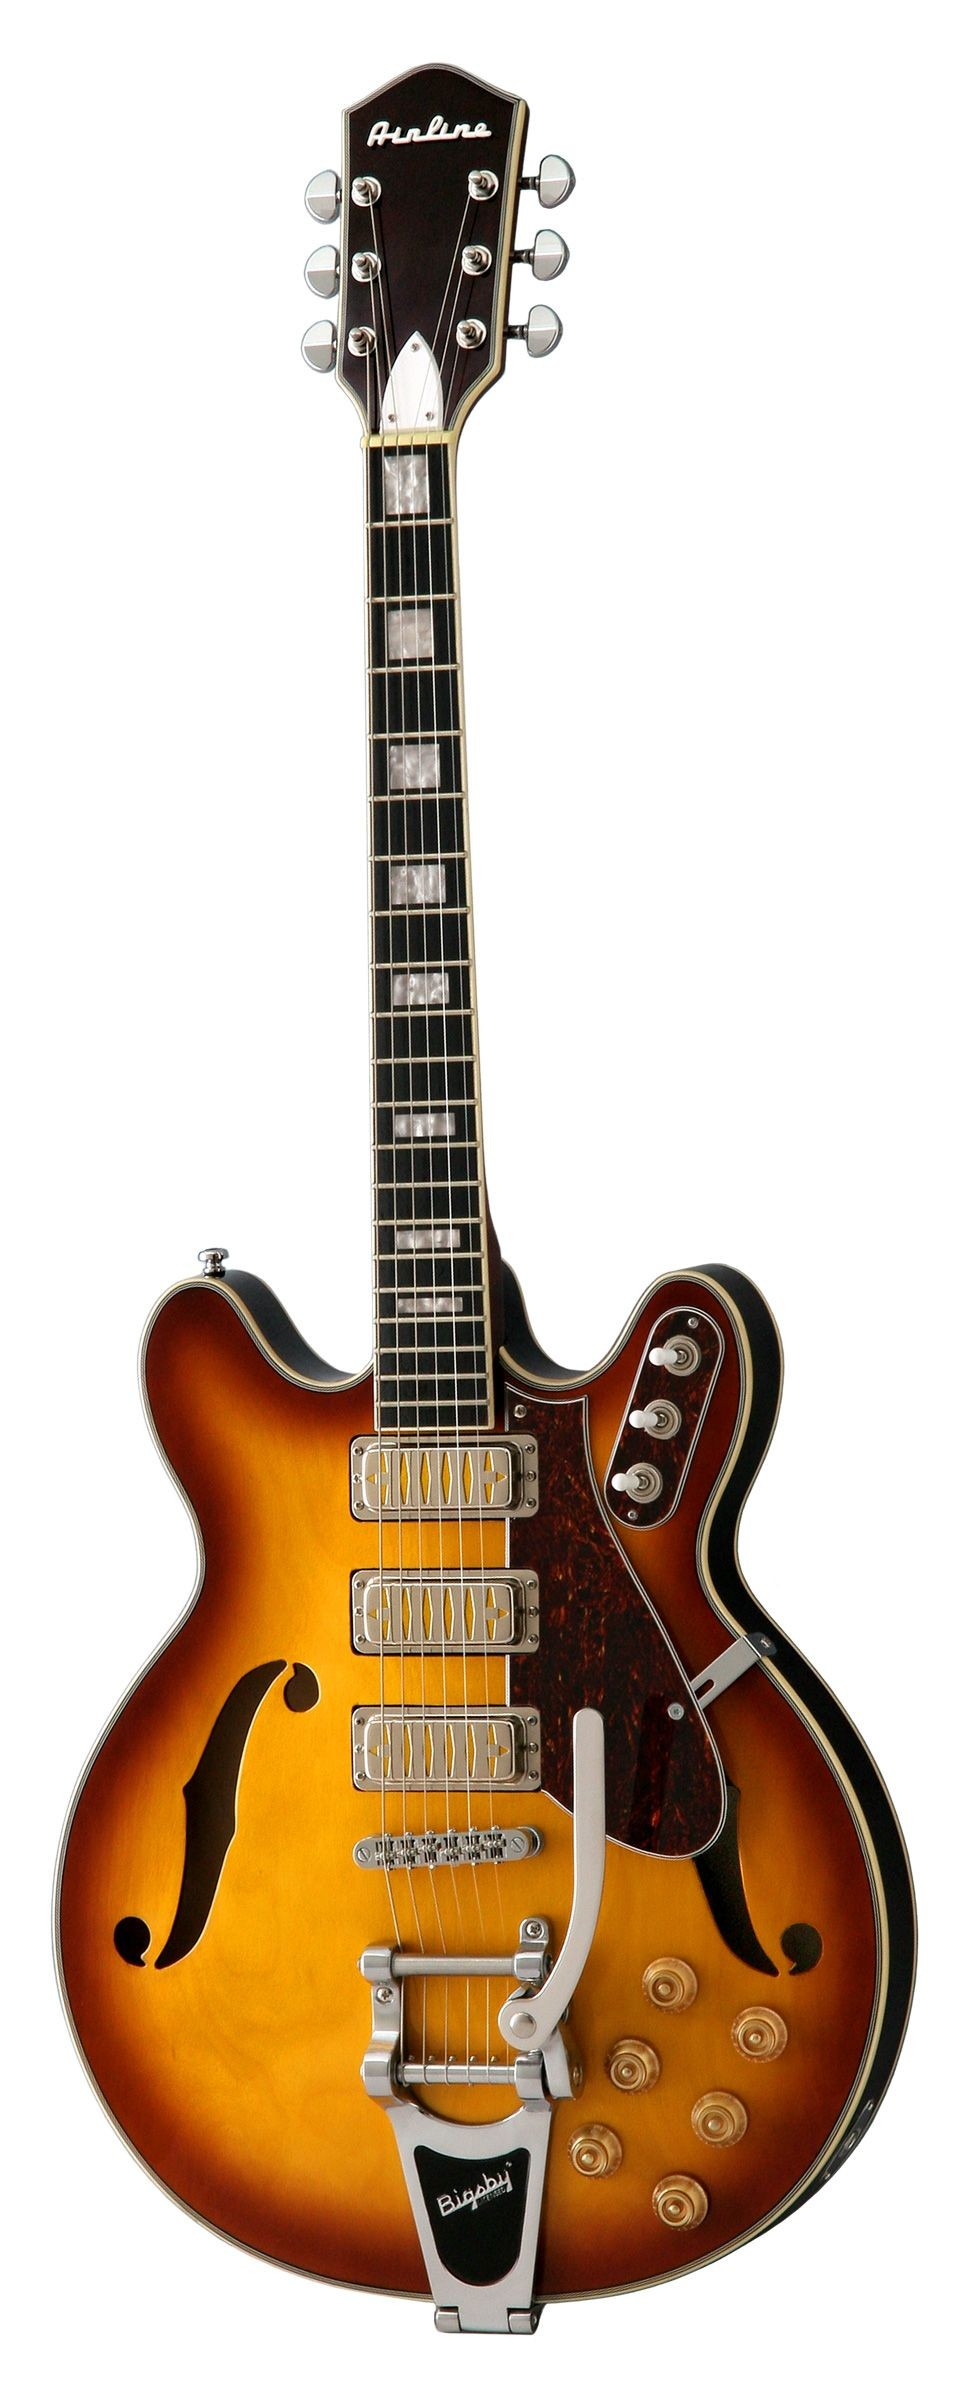 Airline town and country guitar inspirational wiring diagram image 1964 jb hutto res o glass airline guitar airline eastwood pinterest asfbconference2016 Image collections